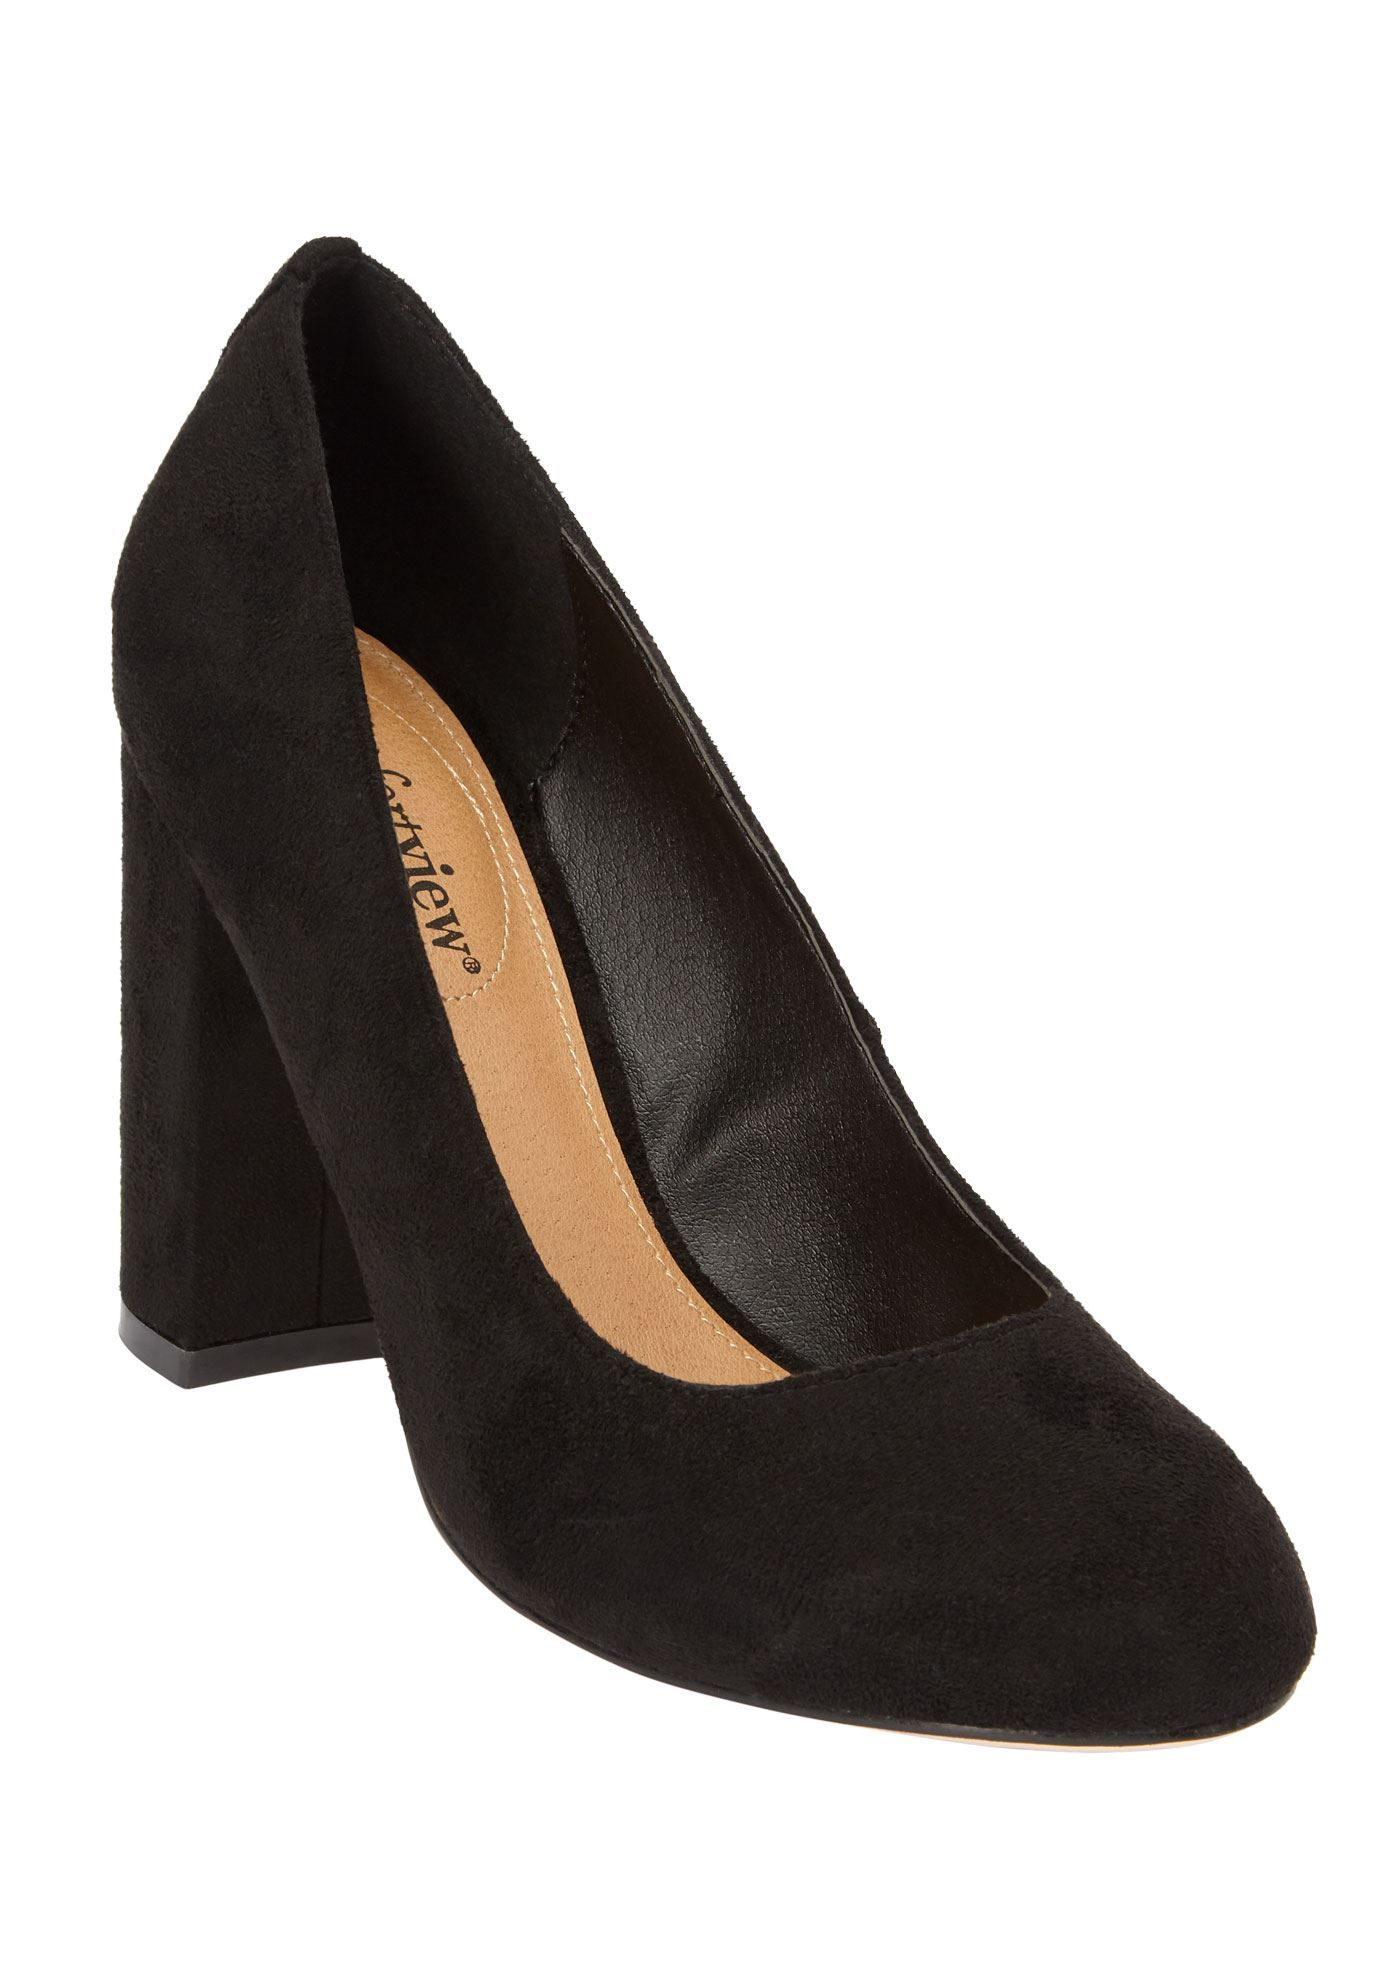 6bbbc31289f44 The Camile Pump by Comfortview - Women's Plus Size Clothing ...